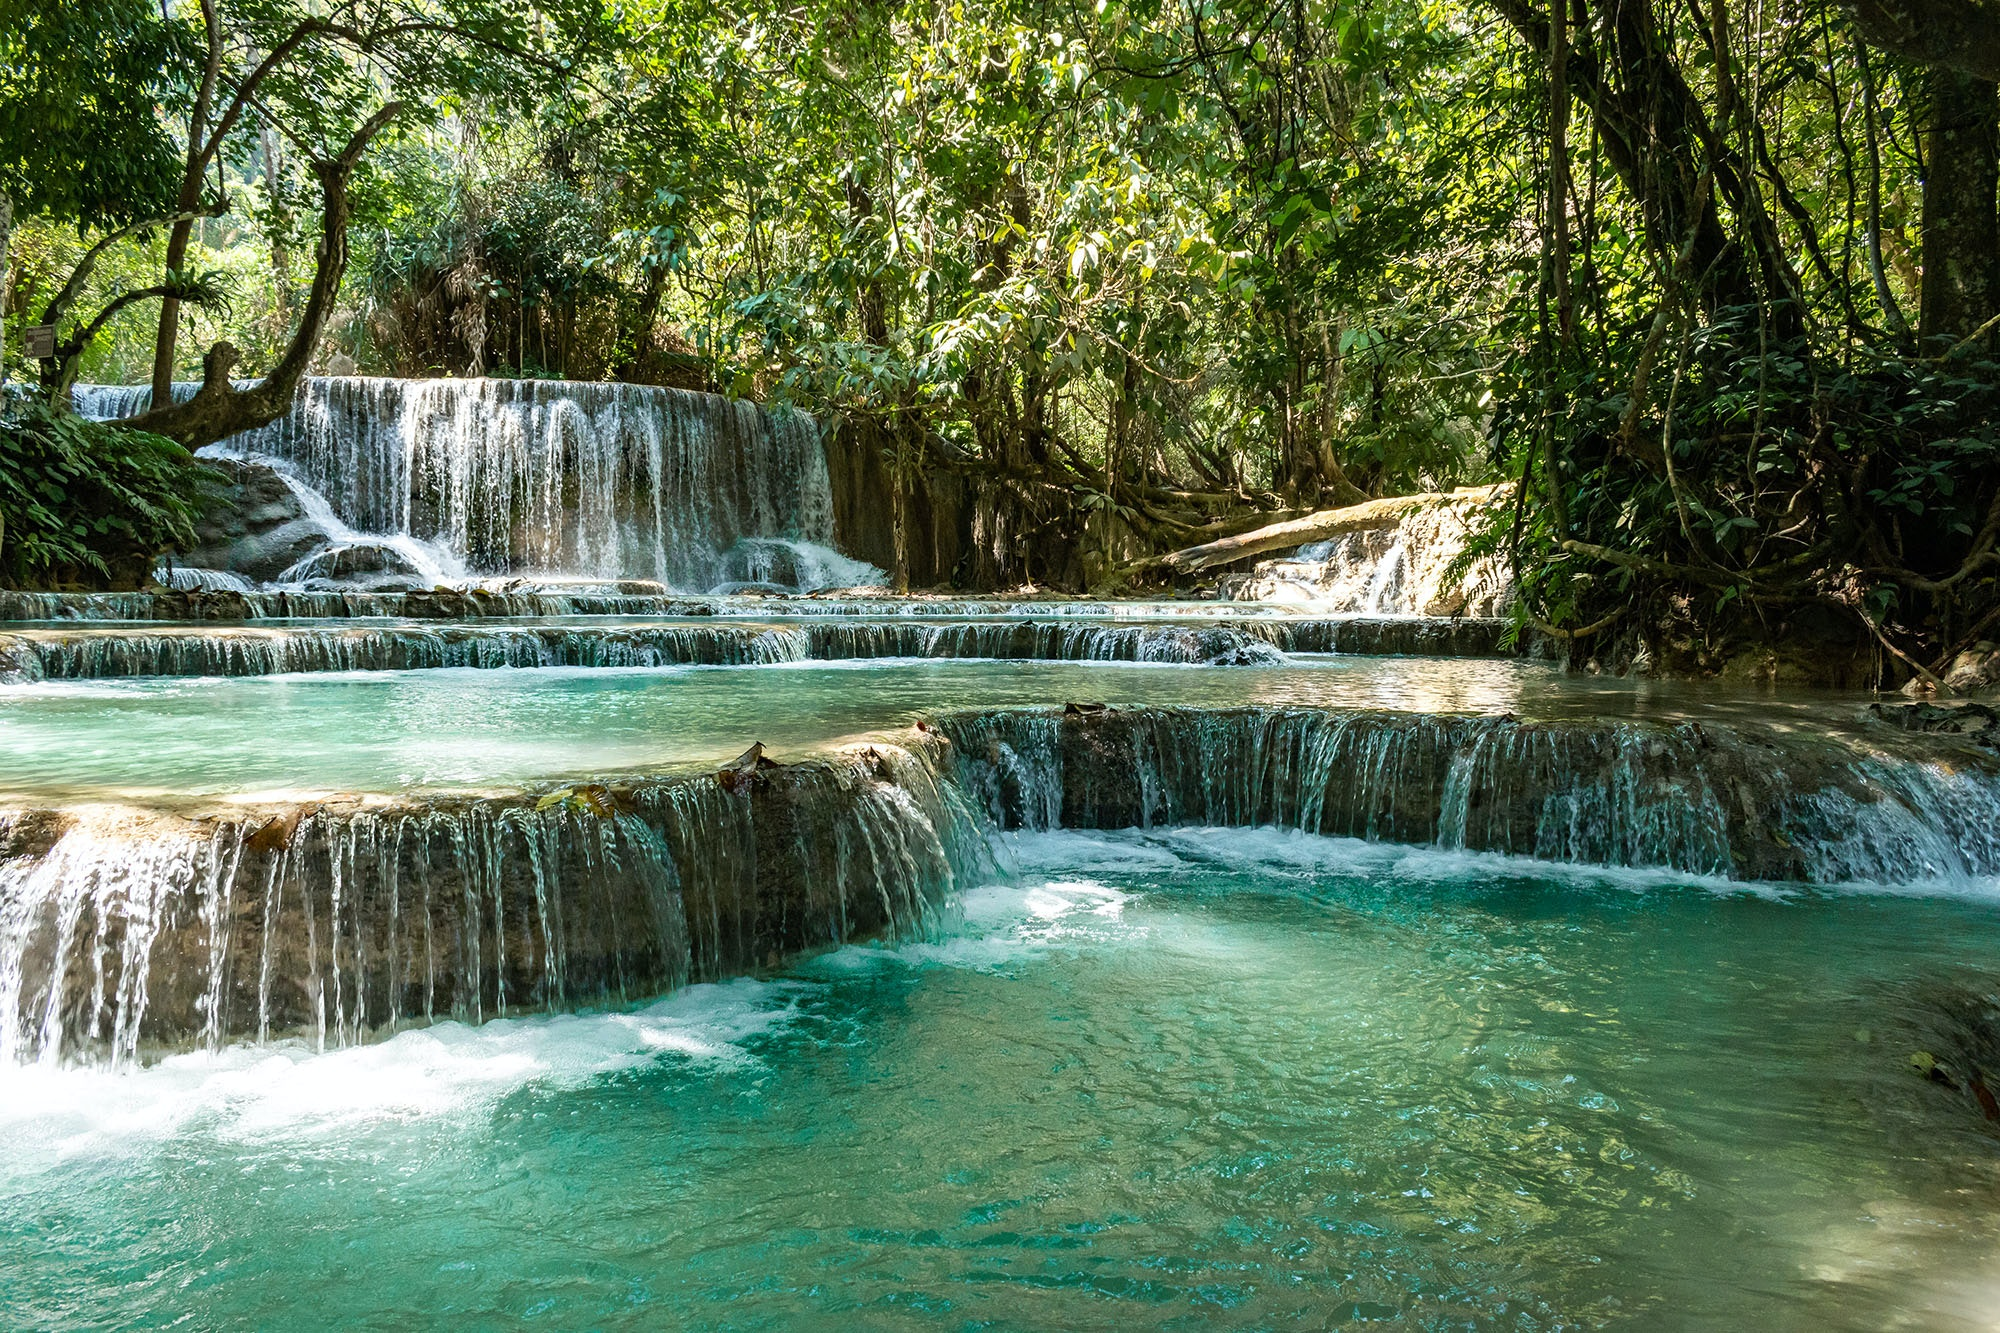 Most of the pools at the Kuang Si waterfalls are open, but a few are closed as sacred sites.